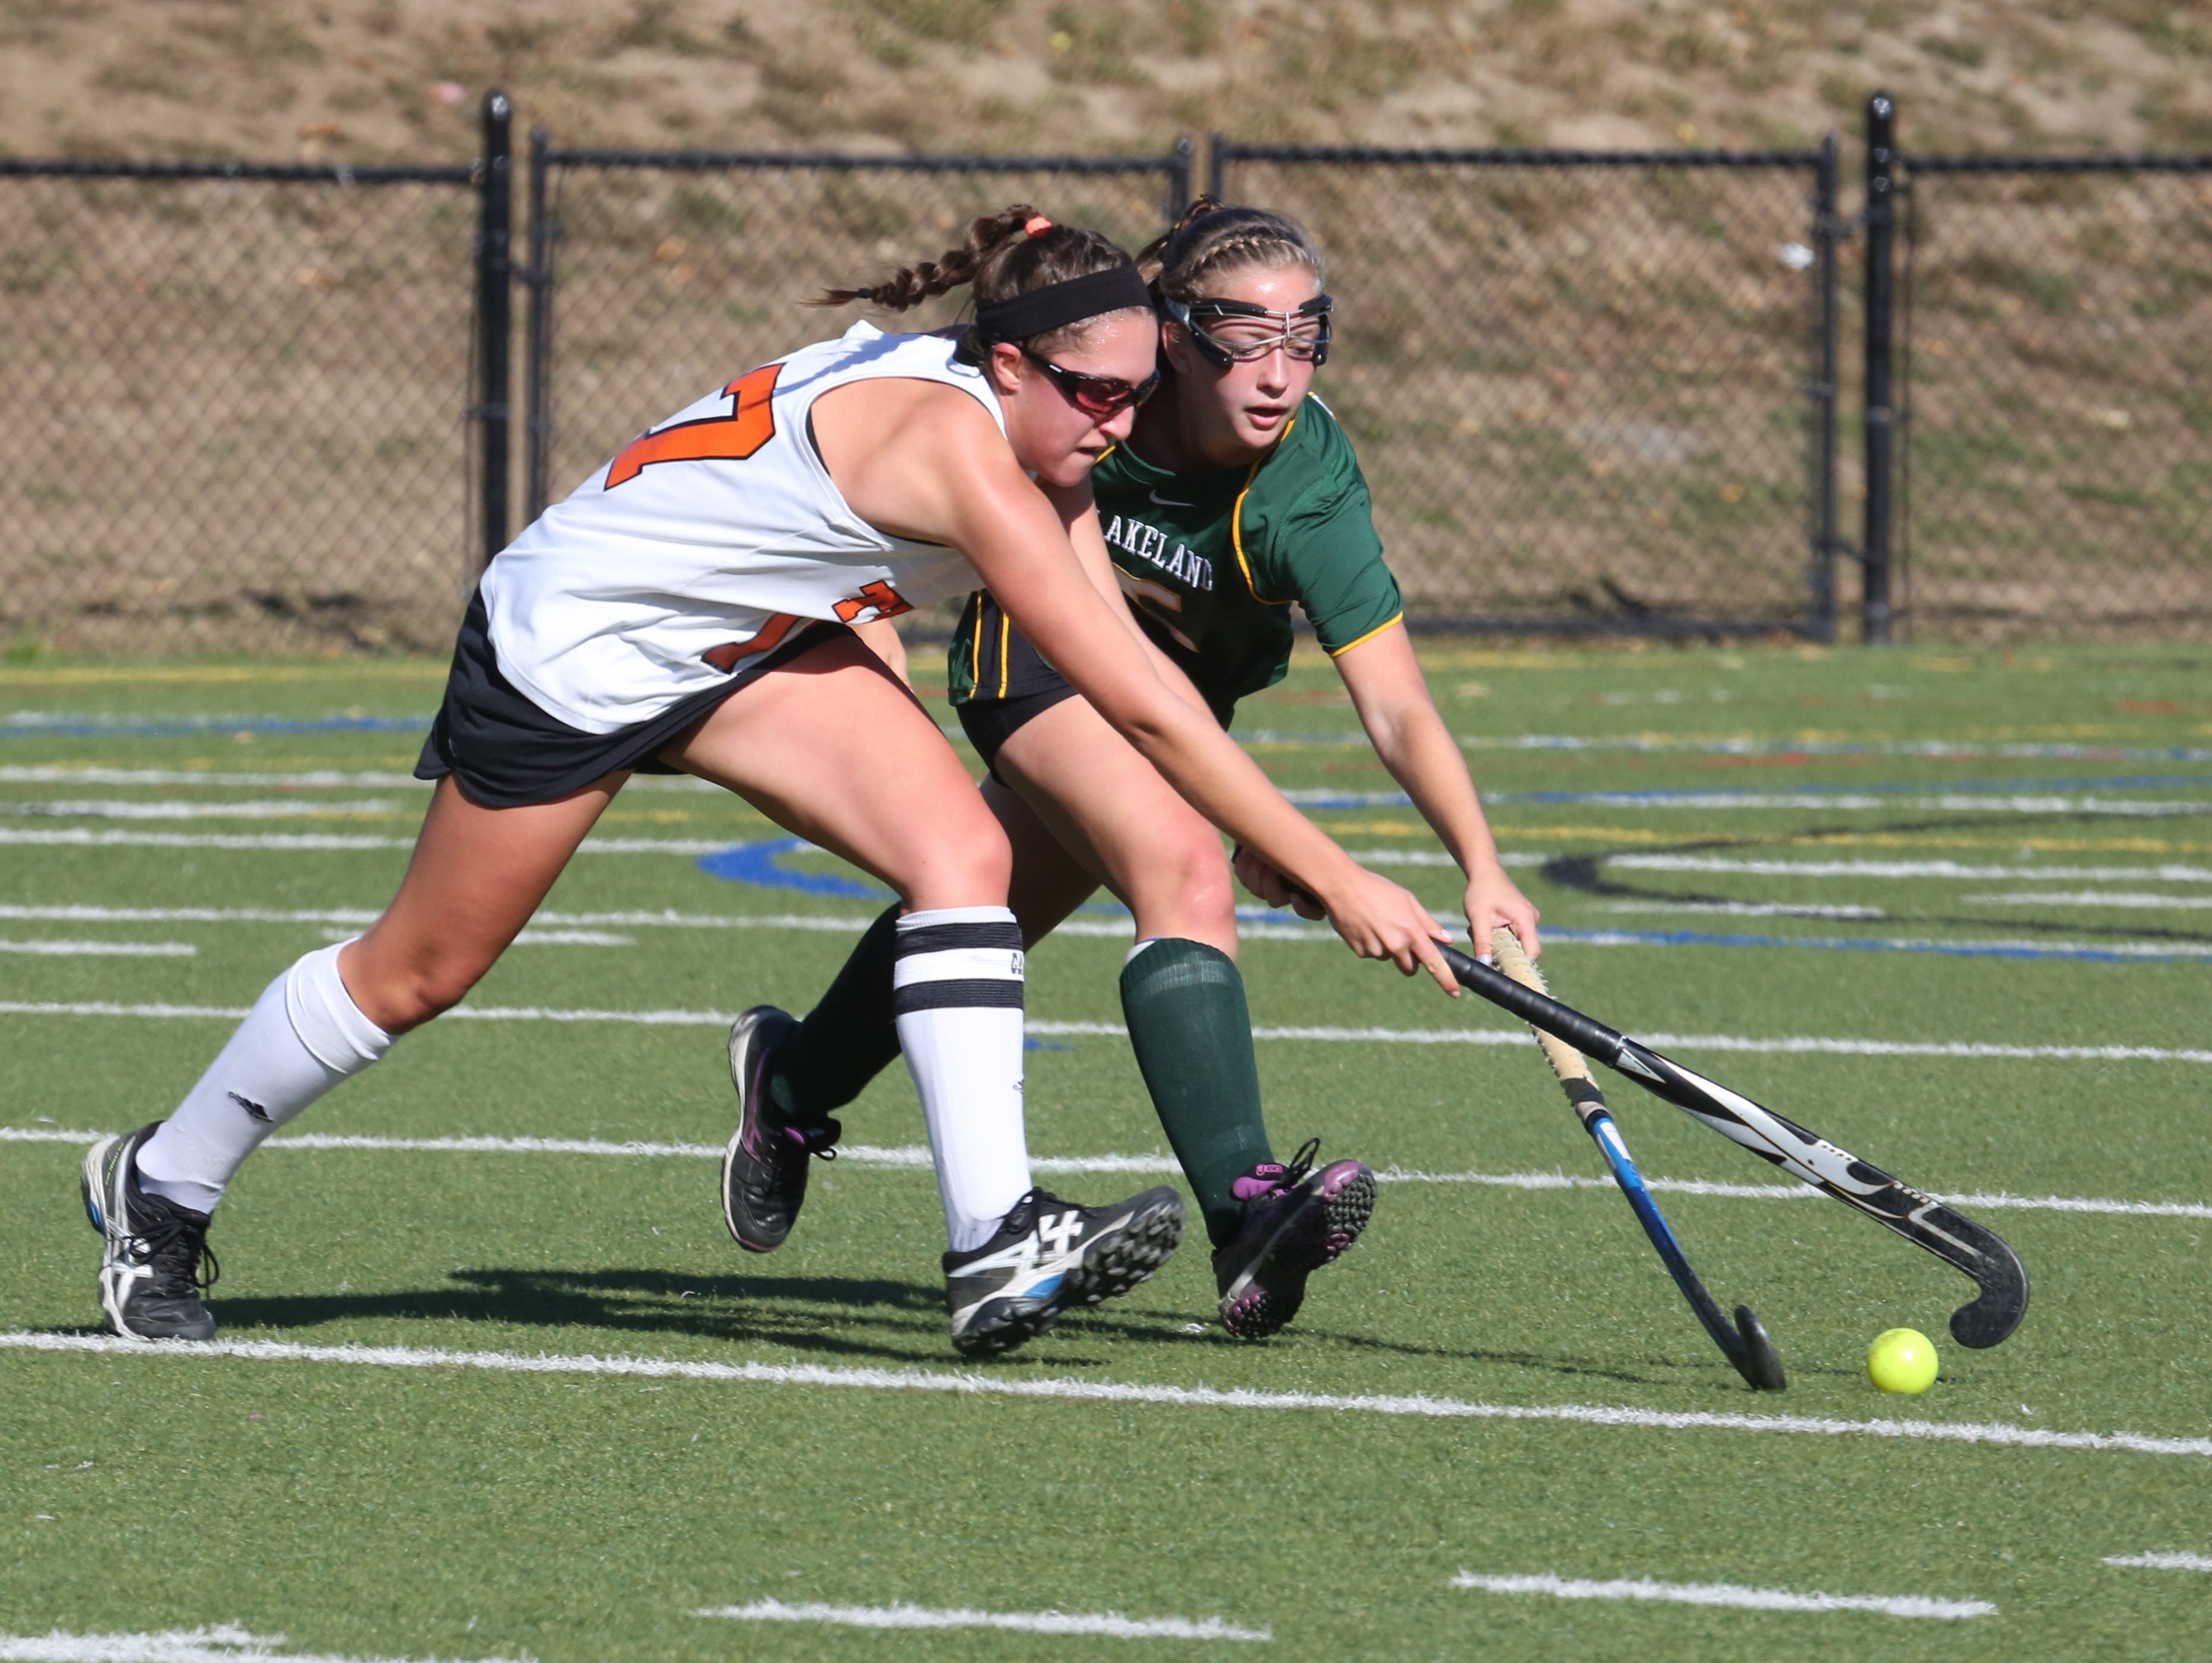 Mamaroneck's Paige Danehy, left, and Lakeland's Kelsey McCrudden battle for the ball during their game at Mamaroneck on Saturday.